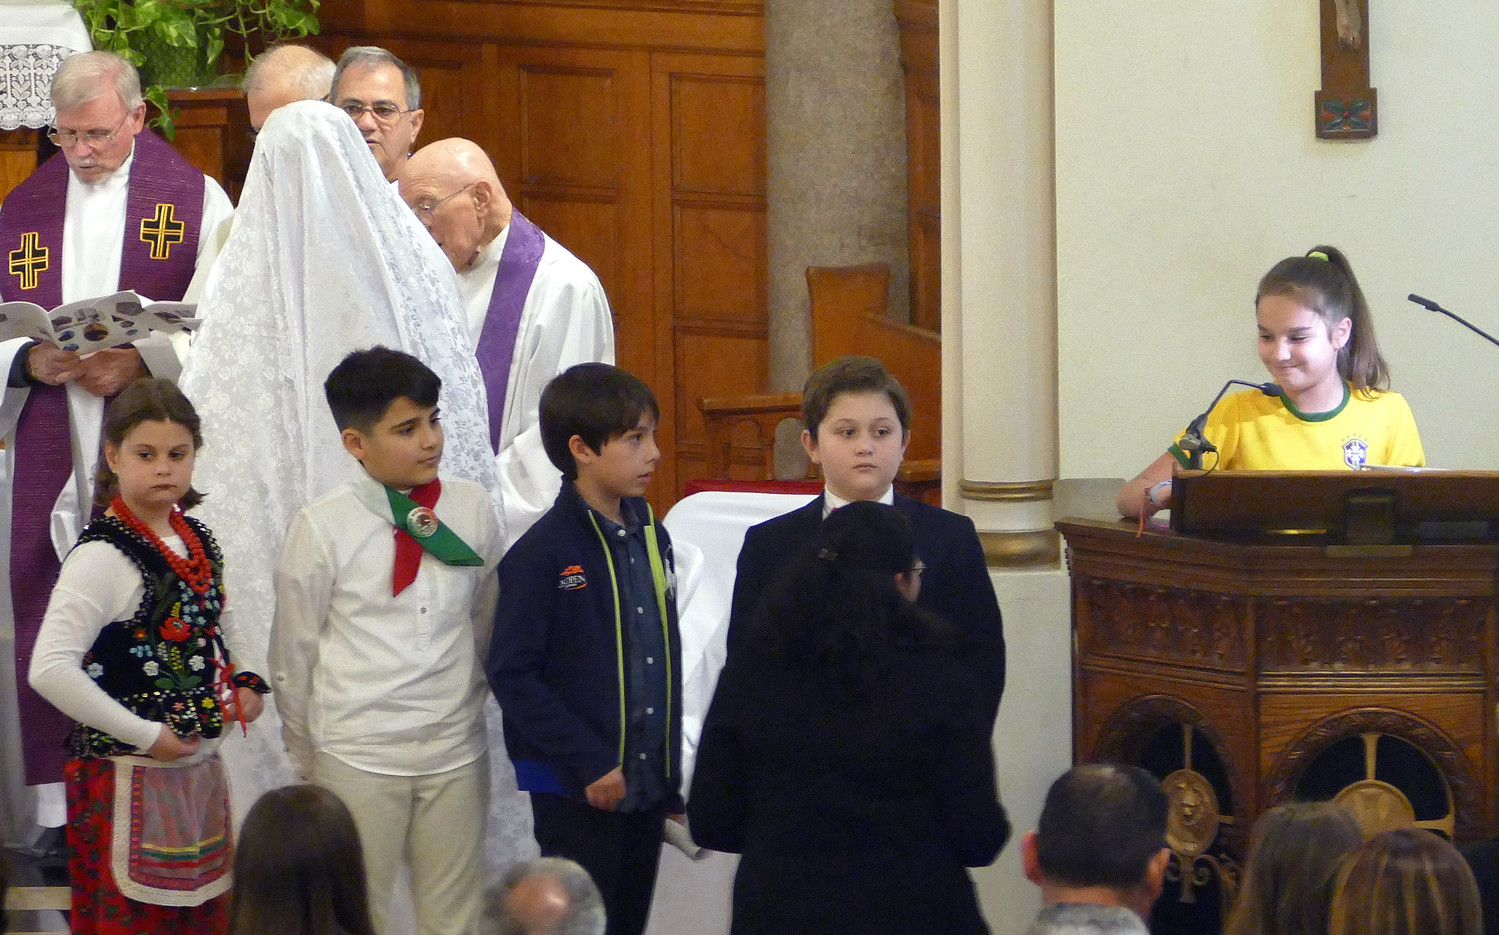 Youth of the parish offer prayers of the faithful.